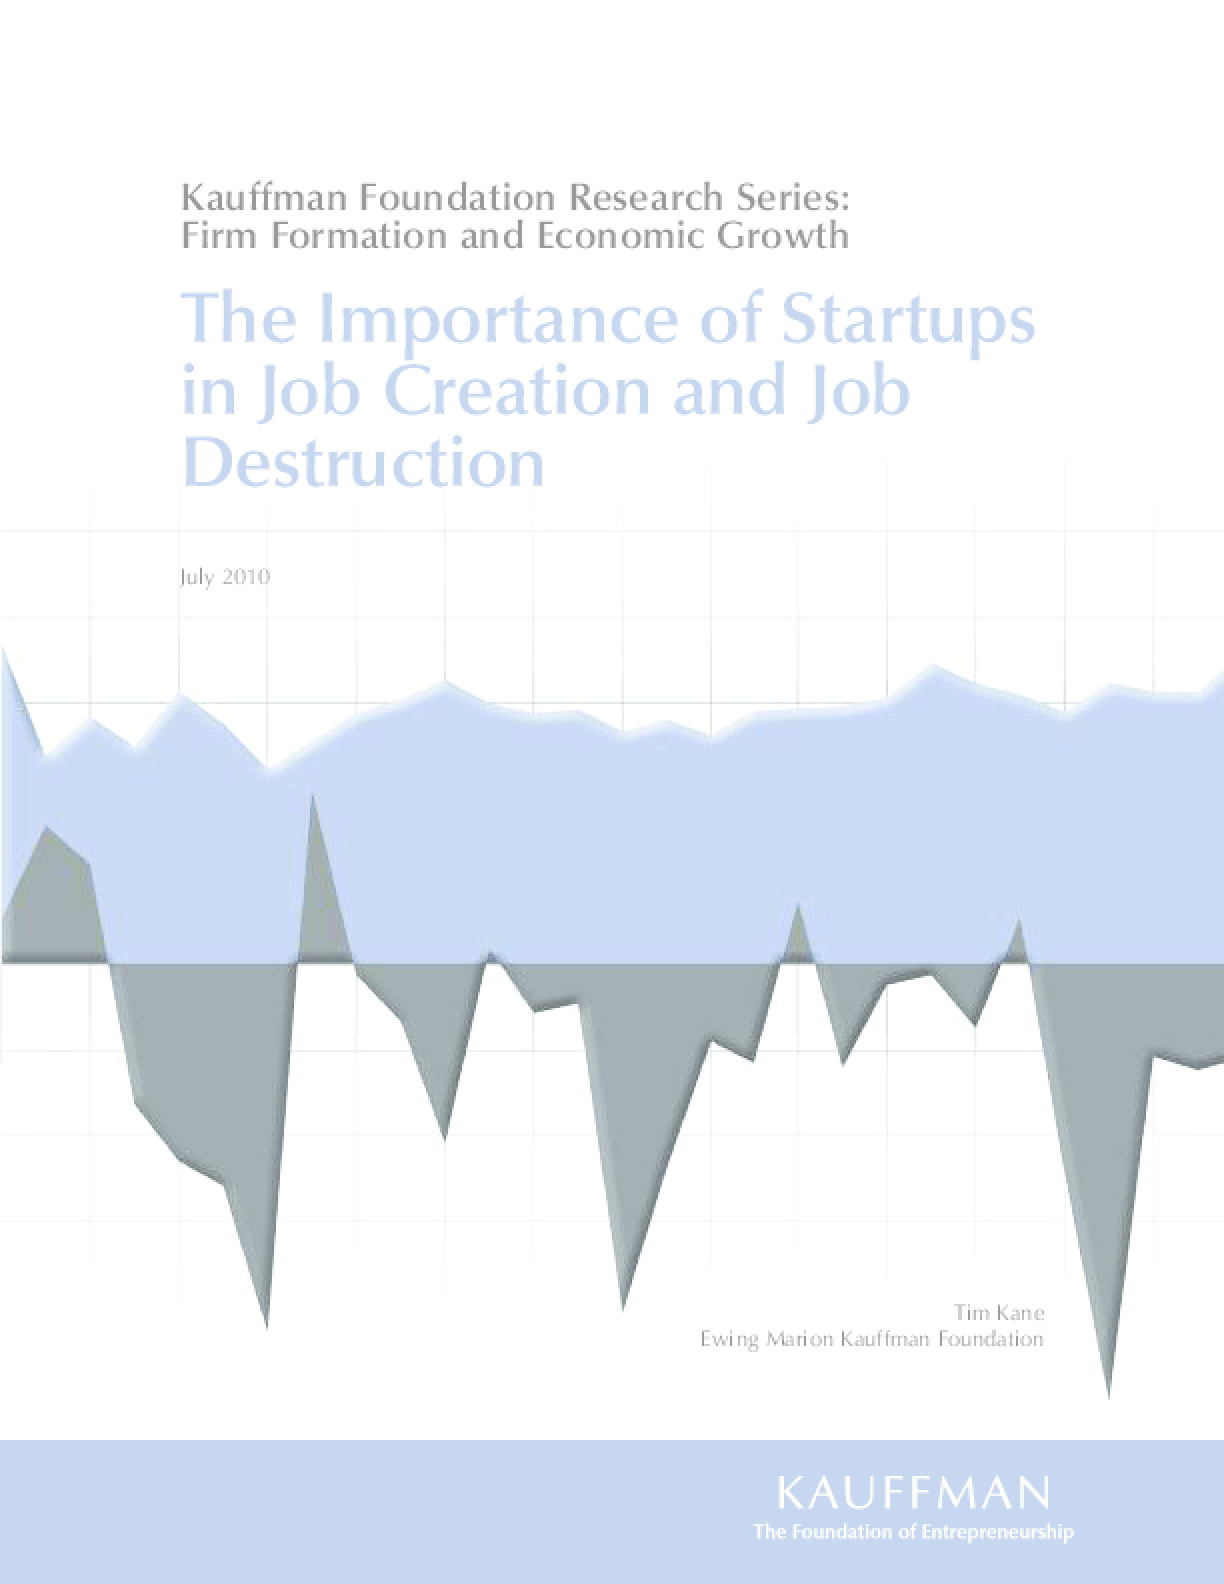 The Importance of Startups in Job Creation and Job Destruction